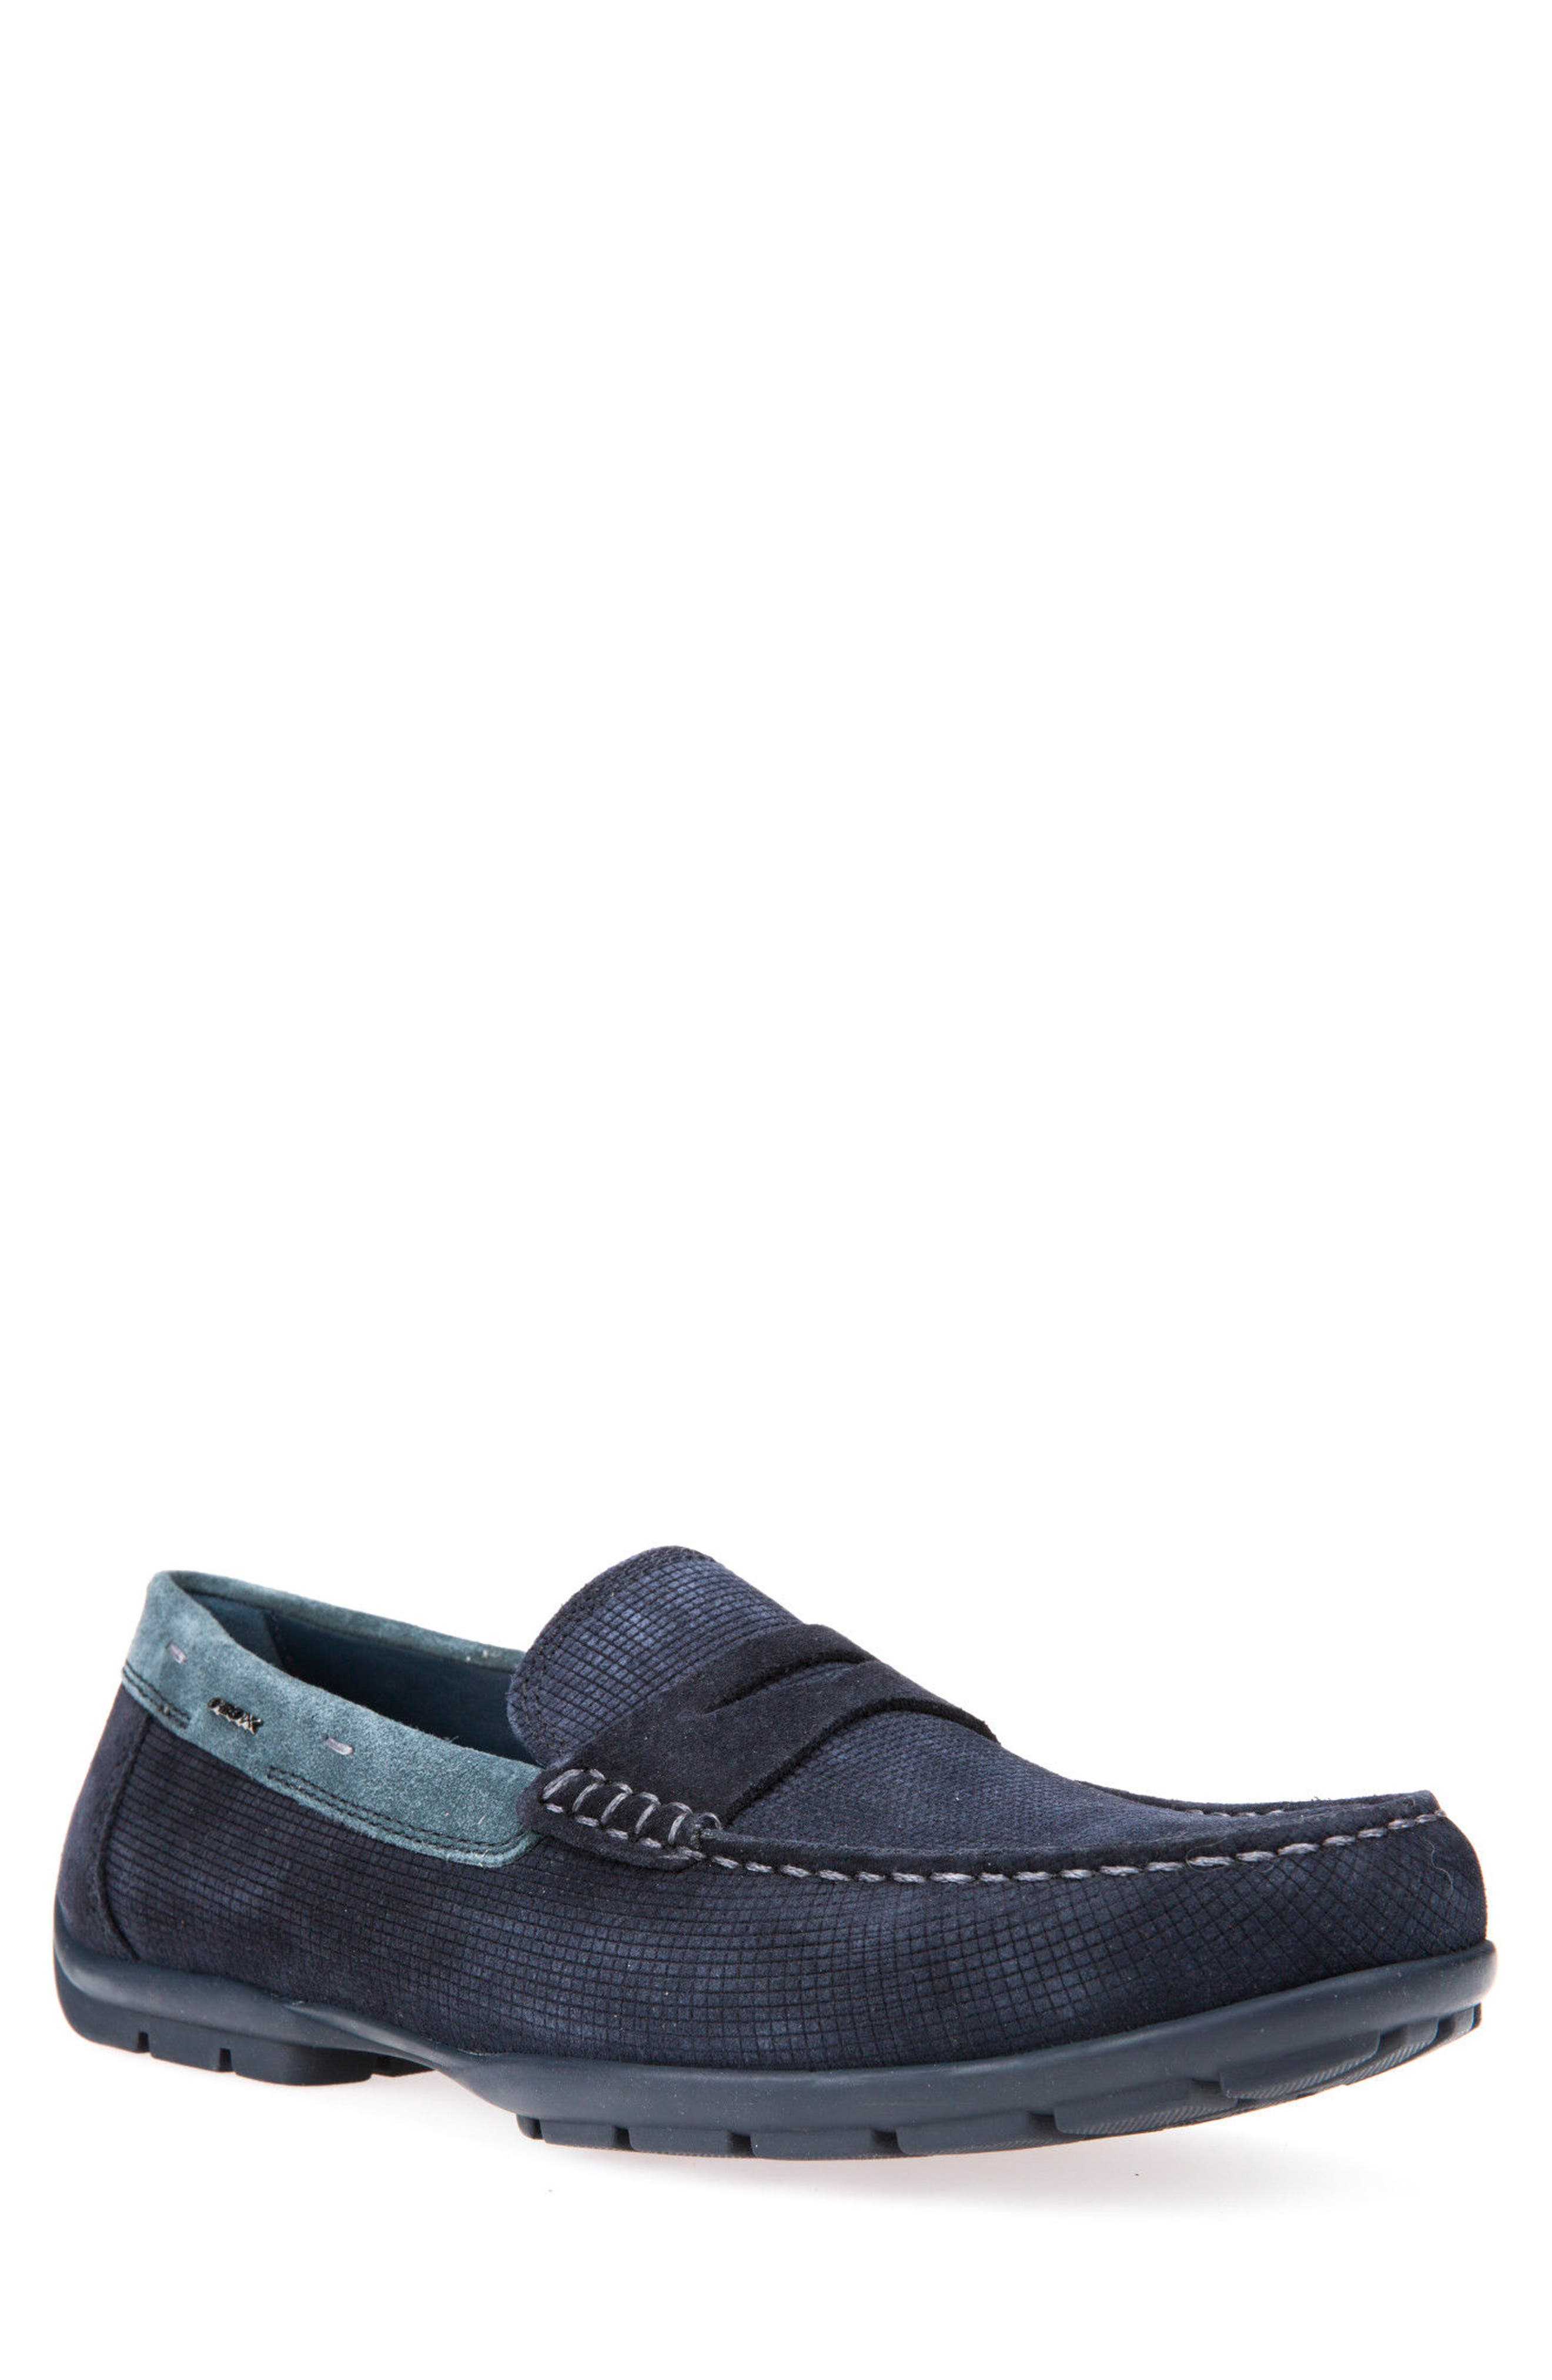 Alternate Image 1 Selected - Geox Monet W 2Fit Driving Moccasin (Men)